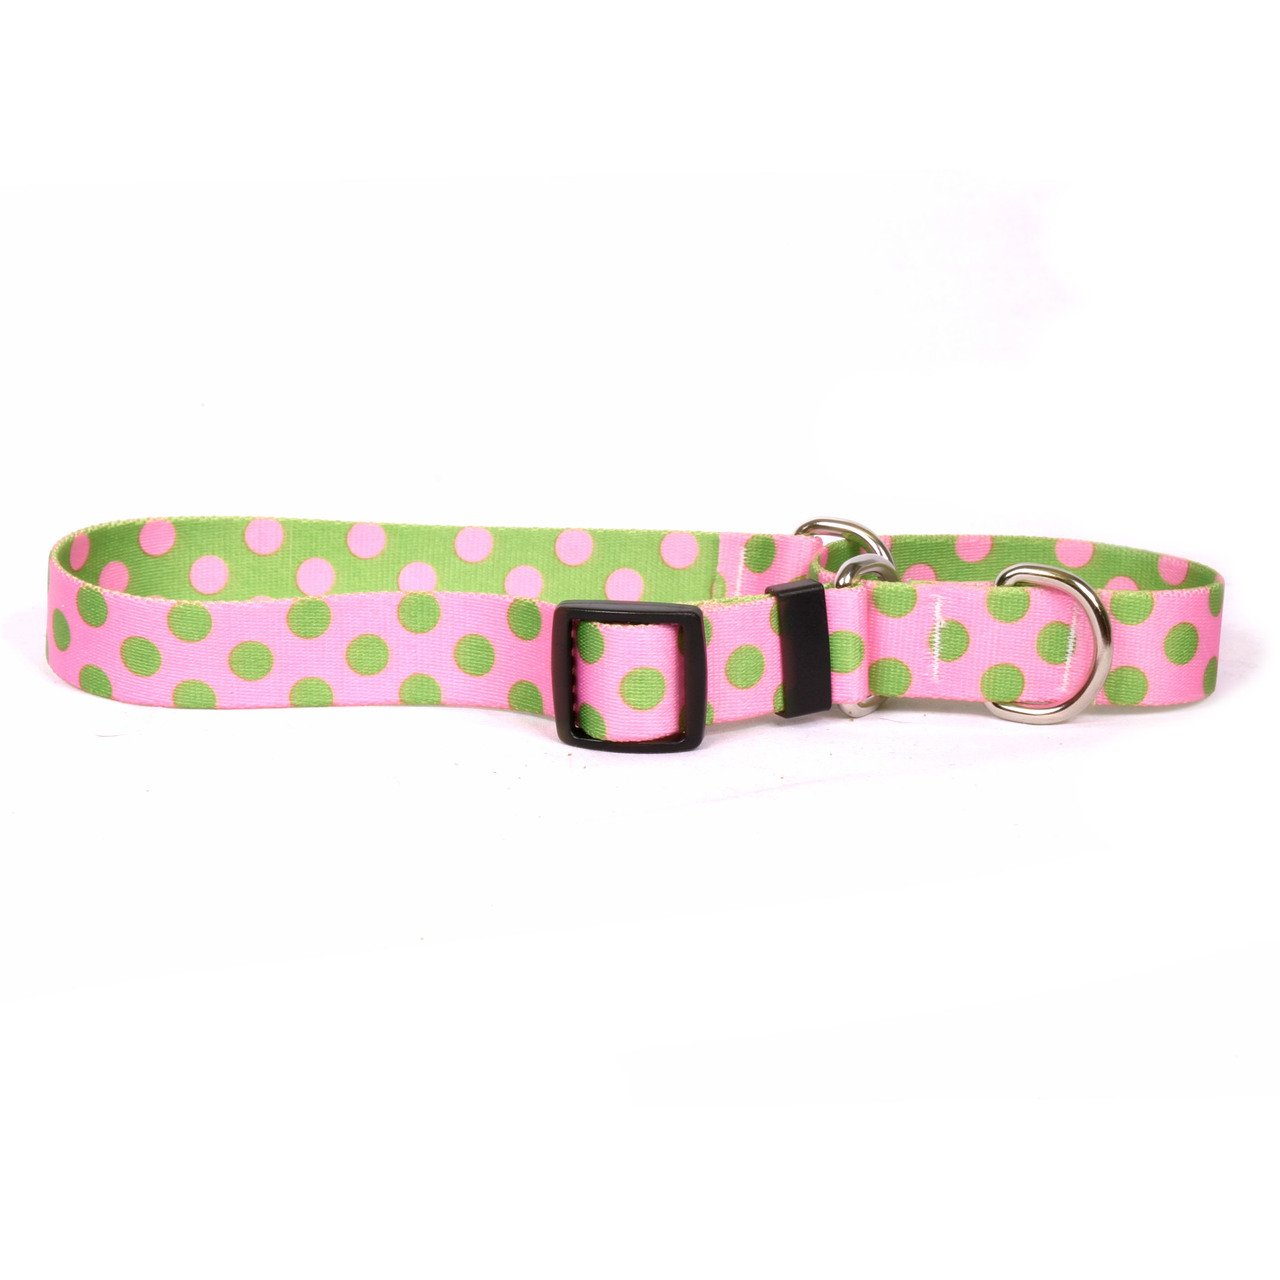 Yellow Dog Design Martingale Slip Collar, Pink/Green Polka Dot, Large 27'' by Yellow Dog Design